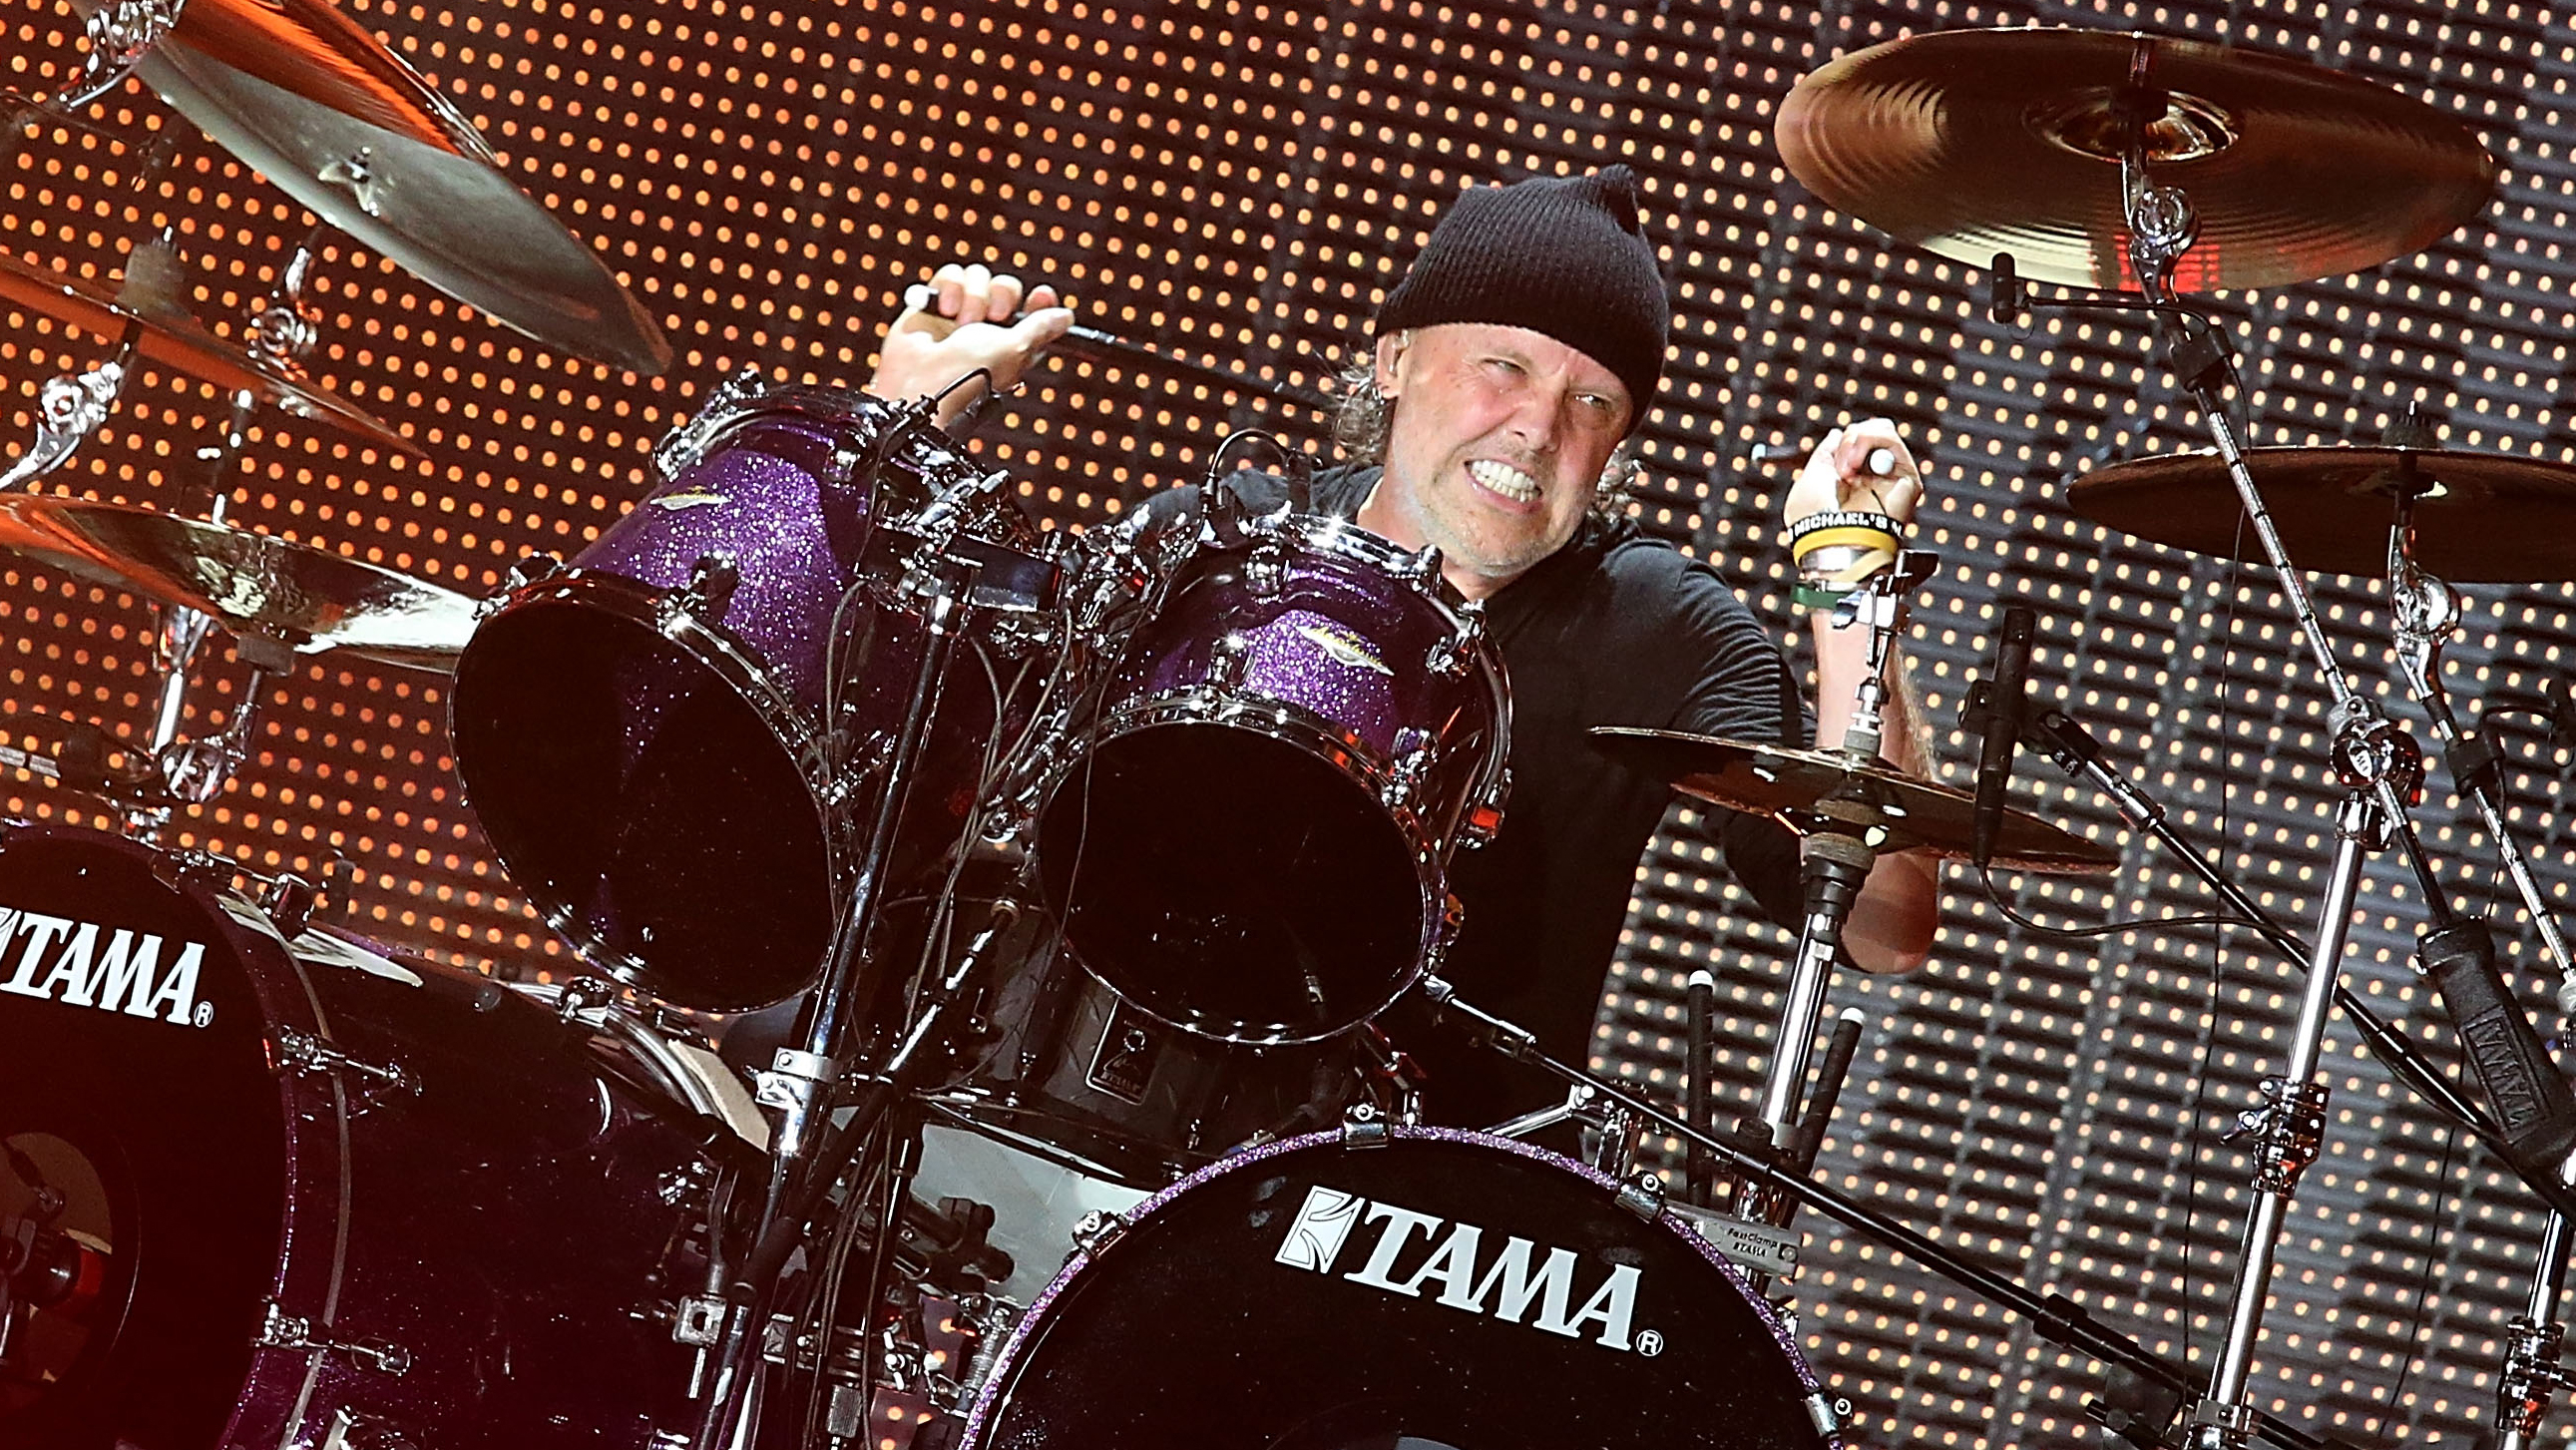 Metallica's Lars Ulrich on His 15 Favorite Metal Albums